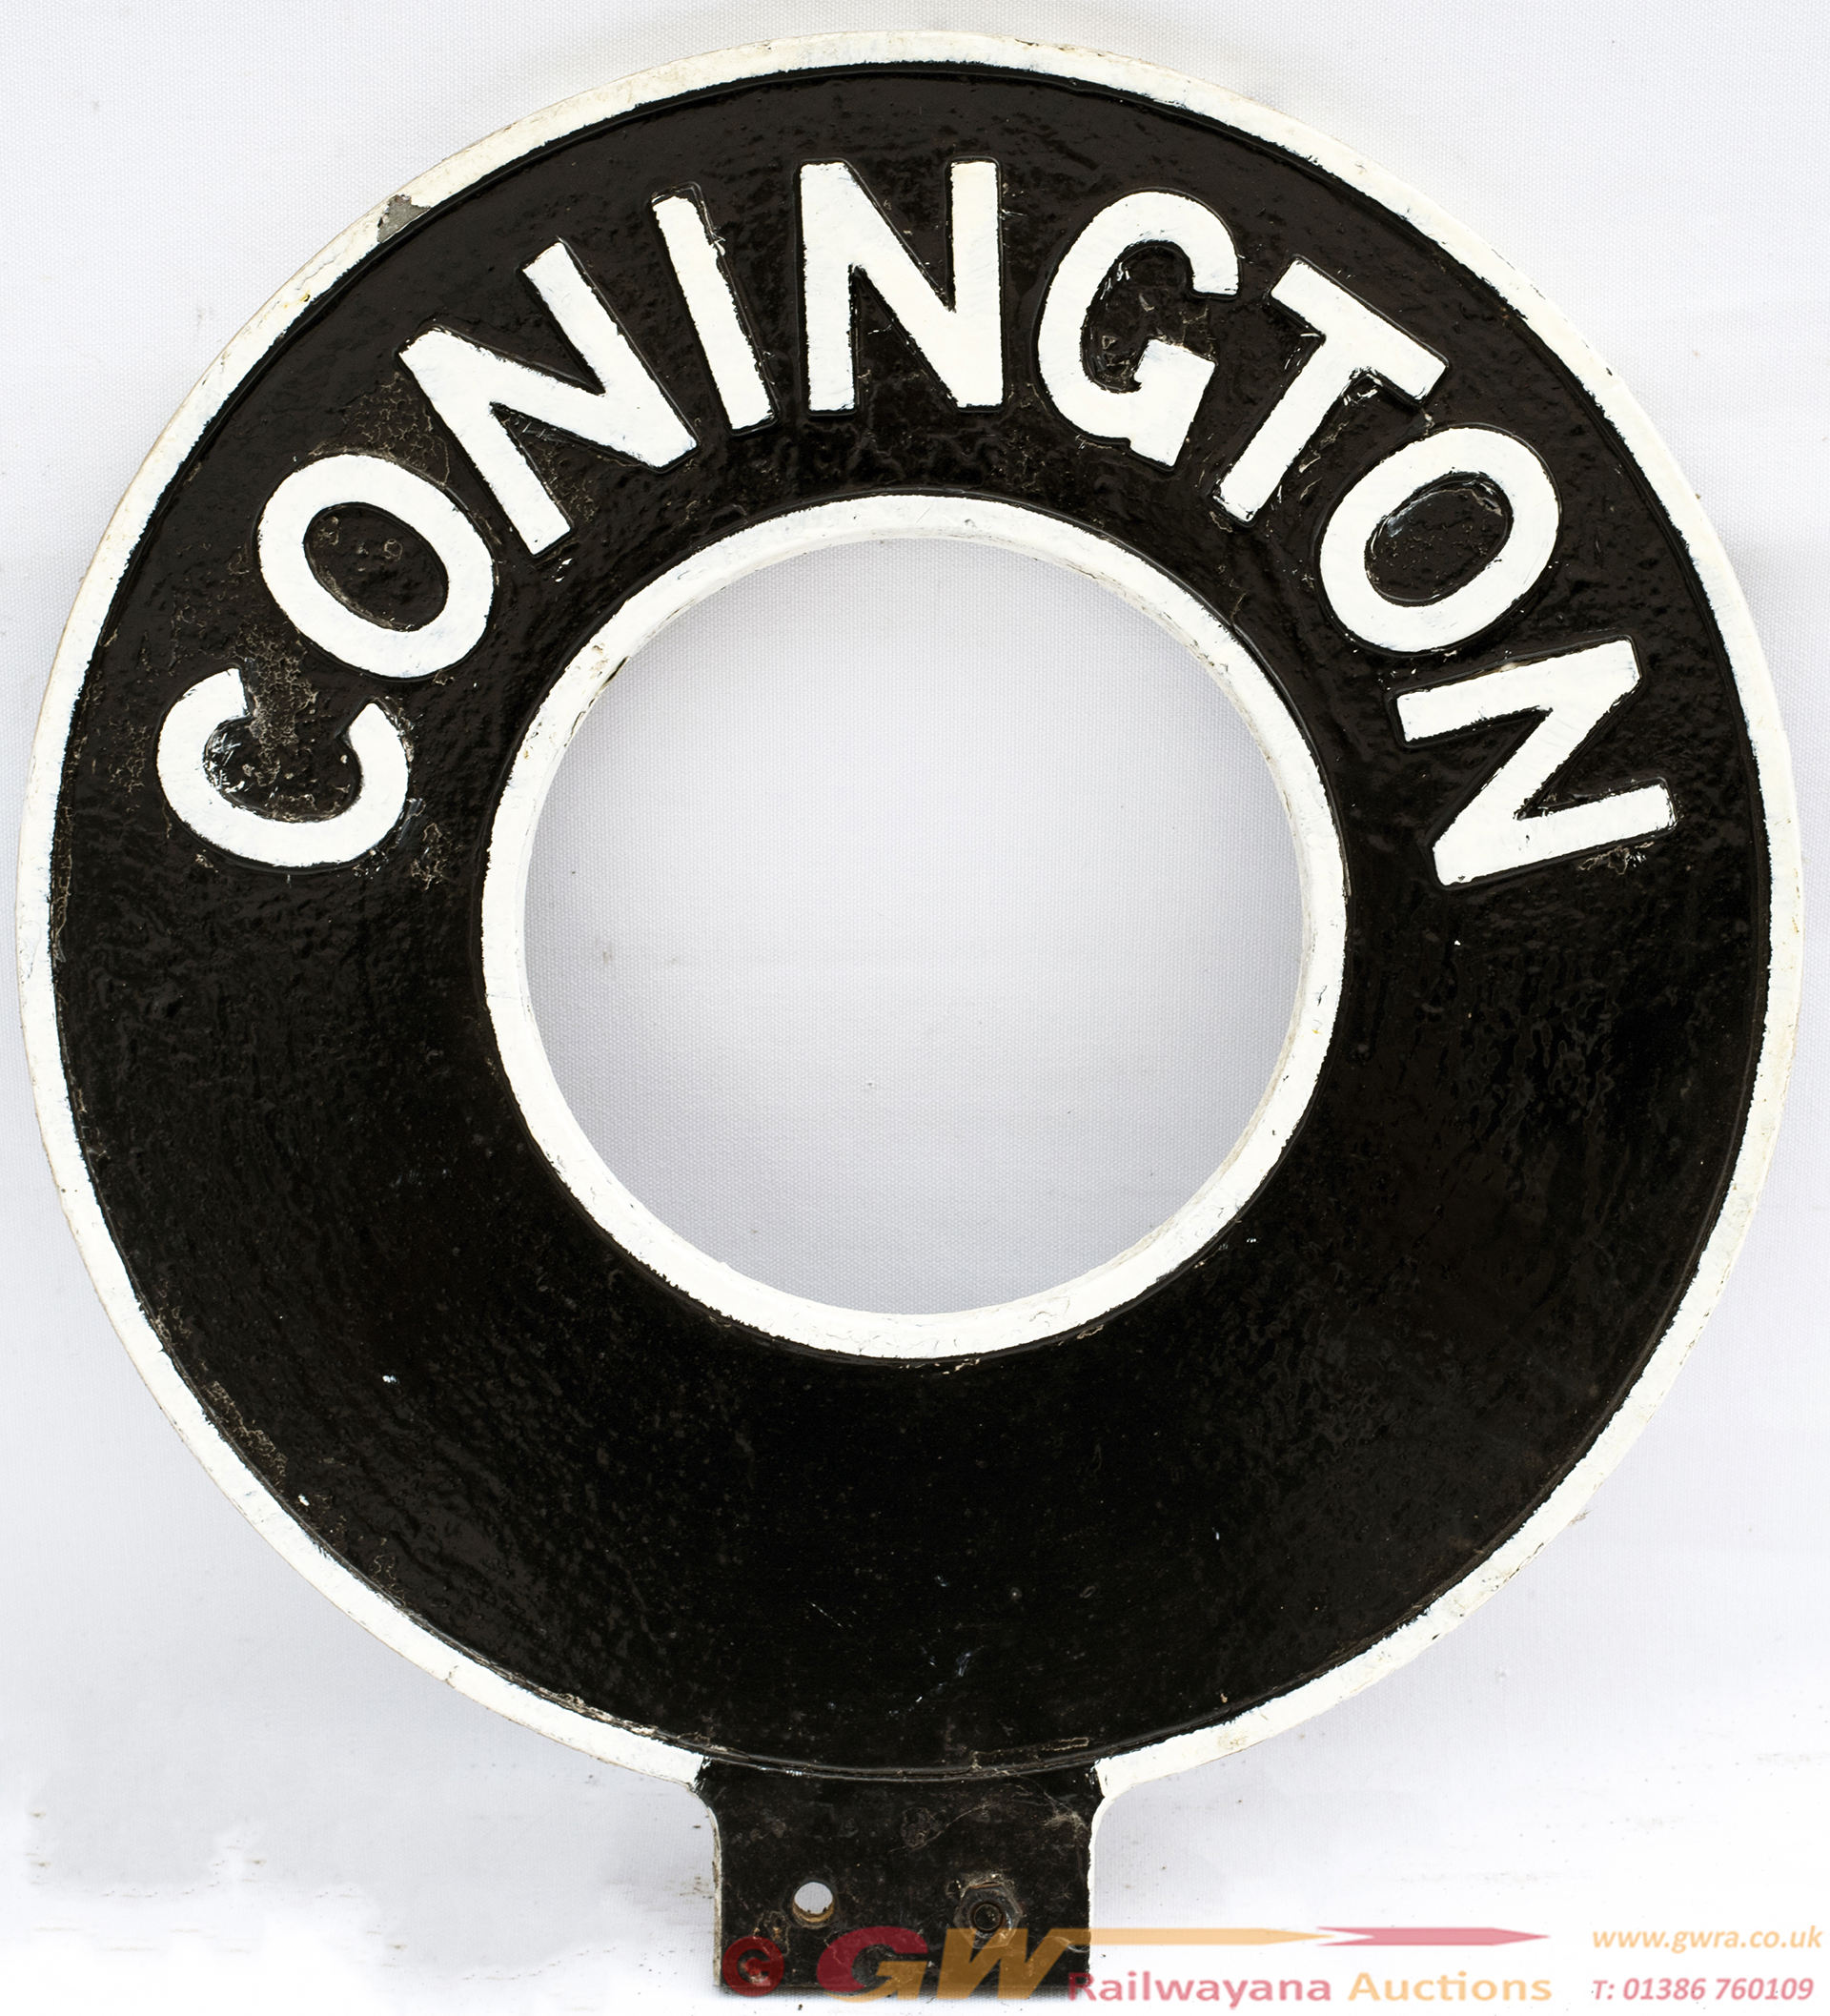 Motoring Road Sign CONNINGTON. Double Sided Cast